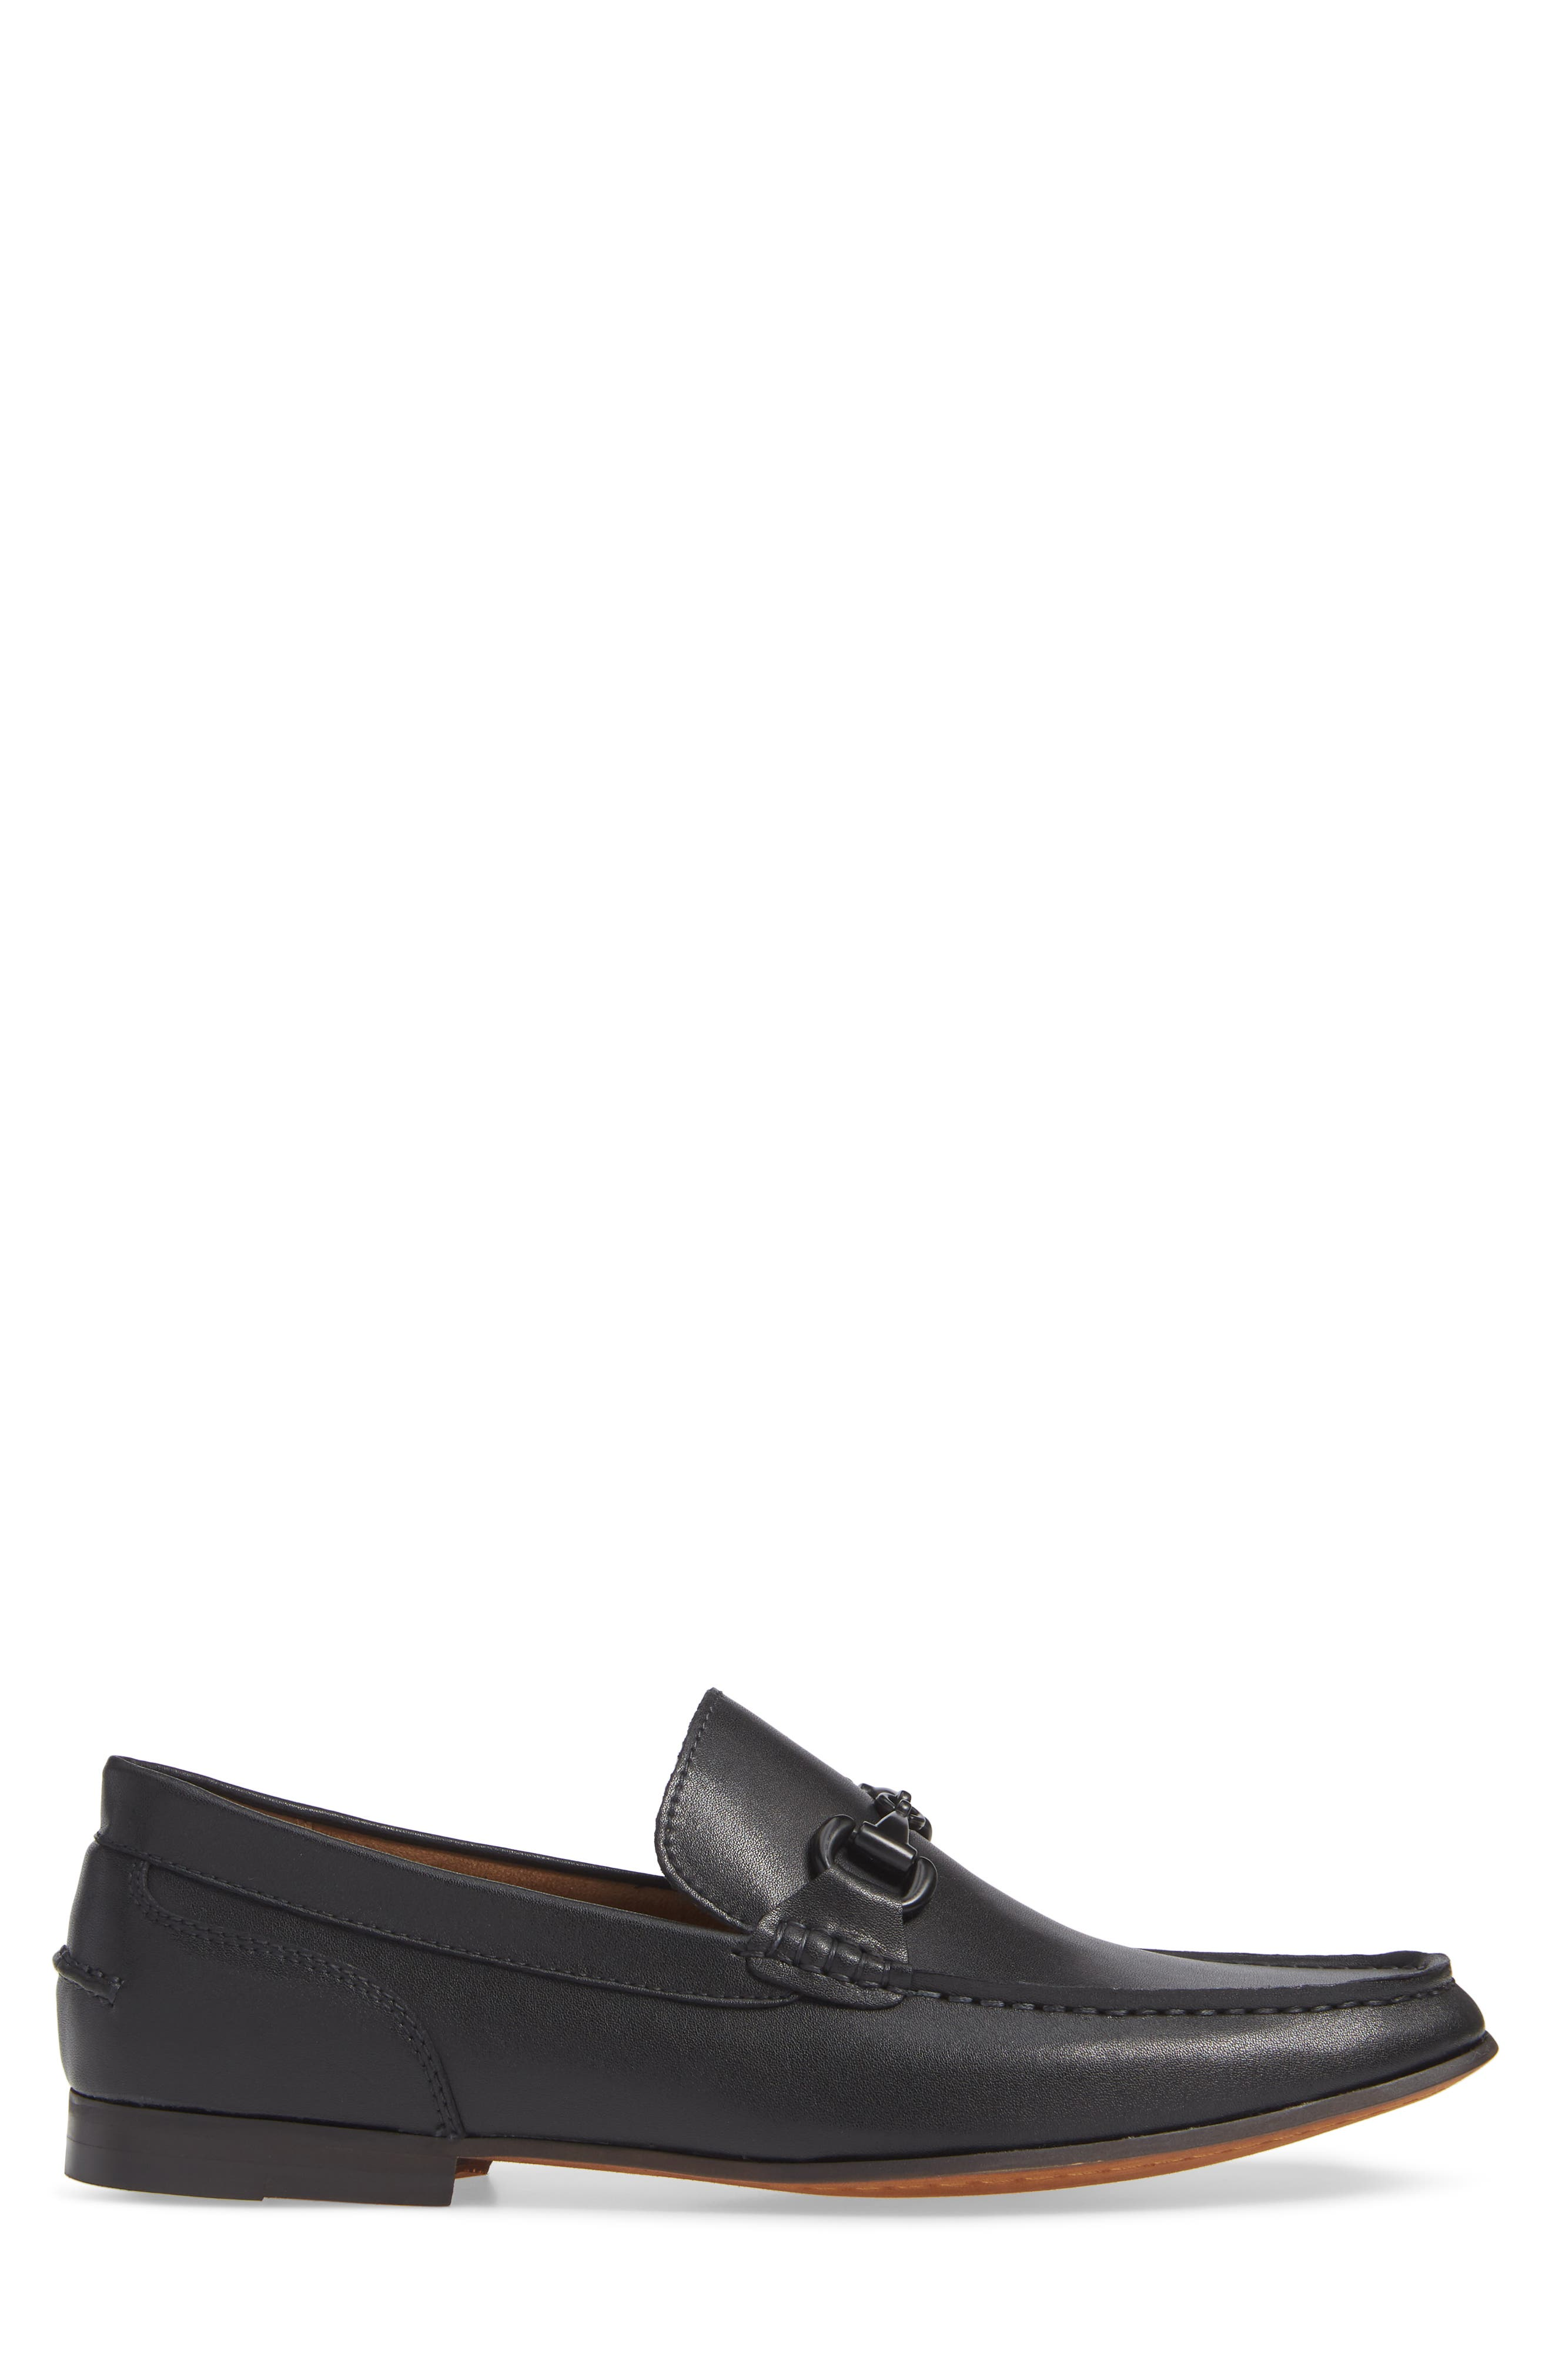 Crespo Loafer,                             Alternate thumbnail 3, color,                             BLACK SYNTHETIC LEATHER